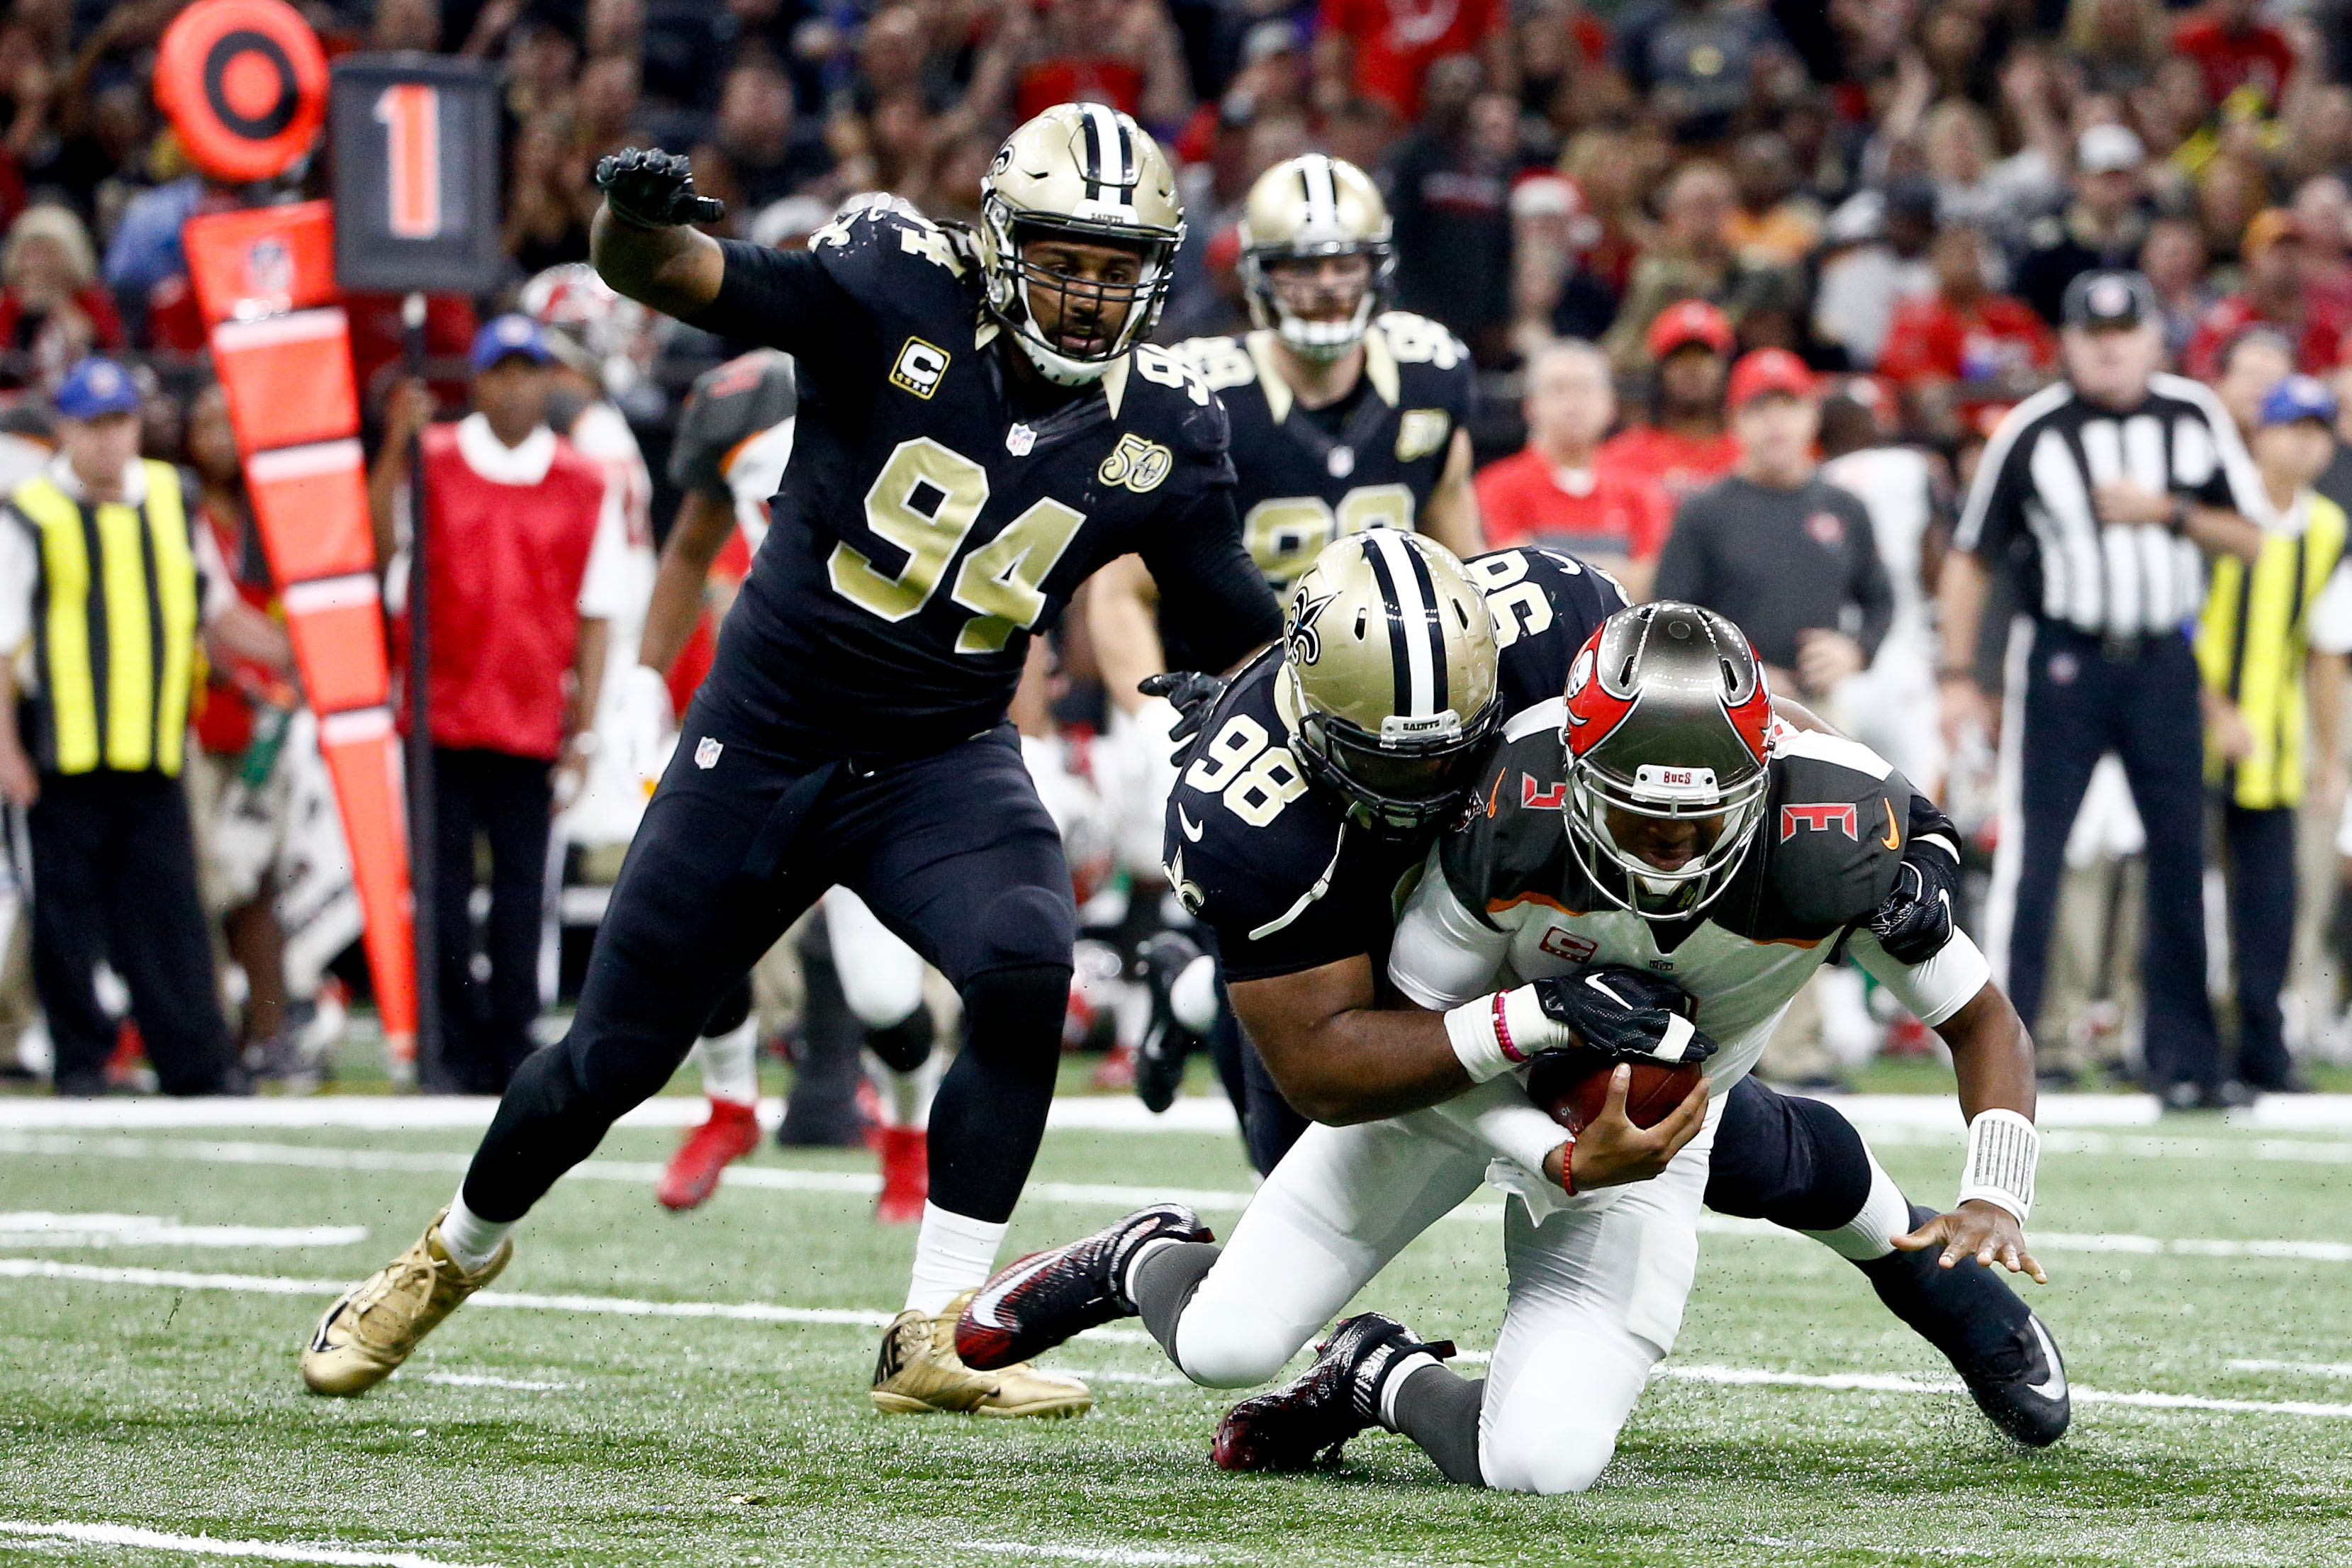 9767441-nfl-tampa-bay-buccaneers-at-new-orleans-saints